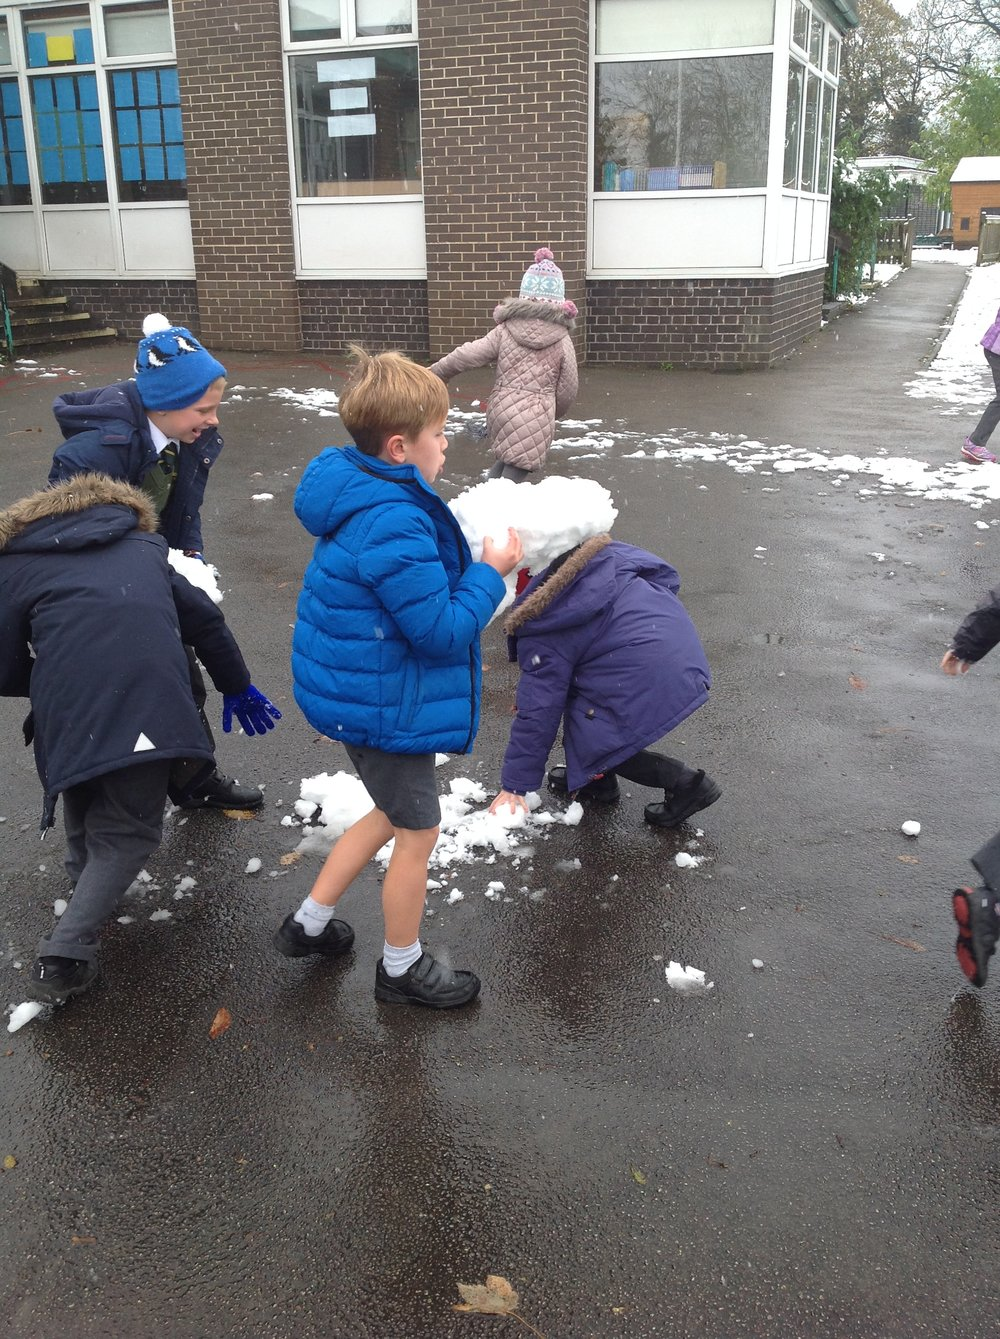 Some of us made BIG snowballs!